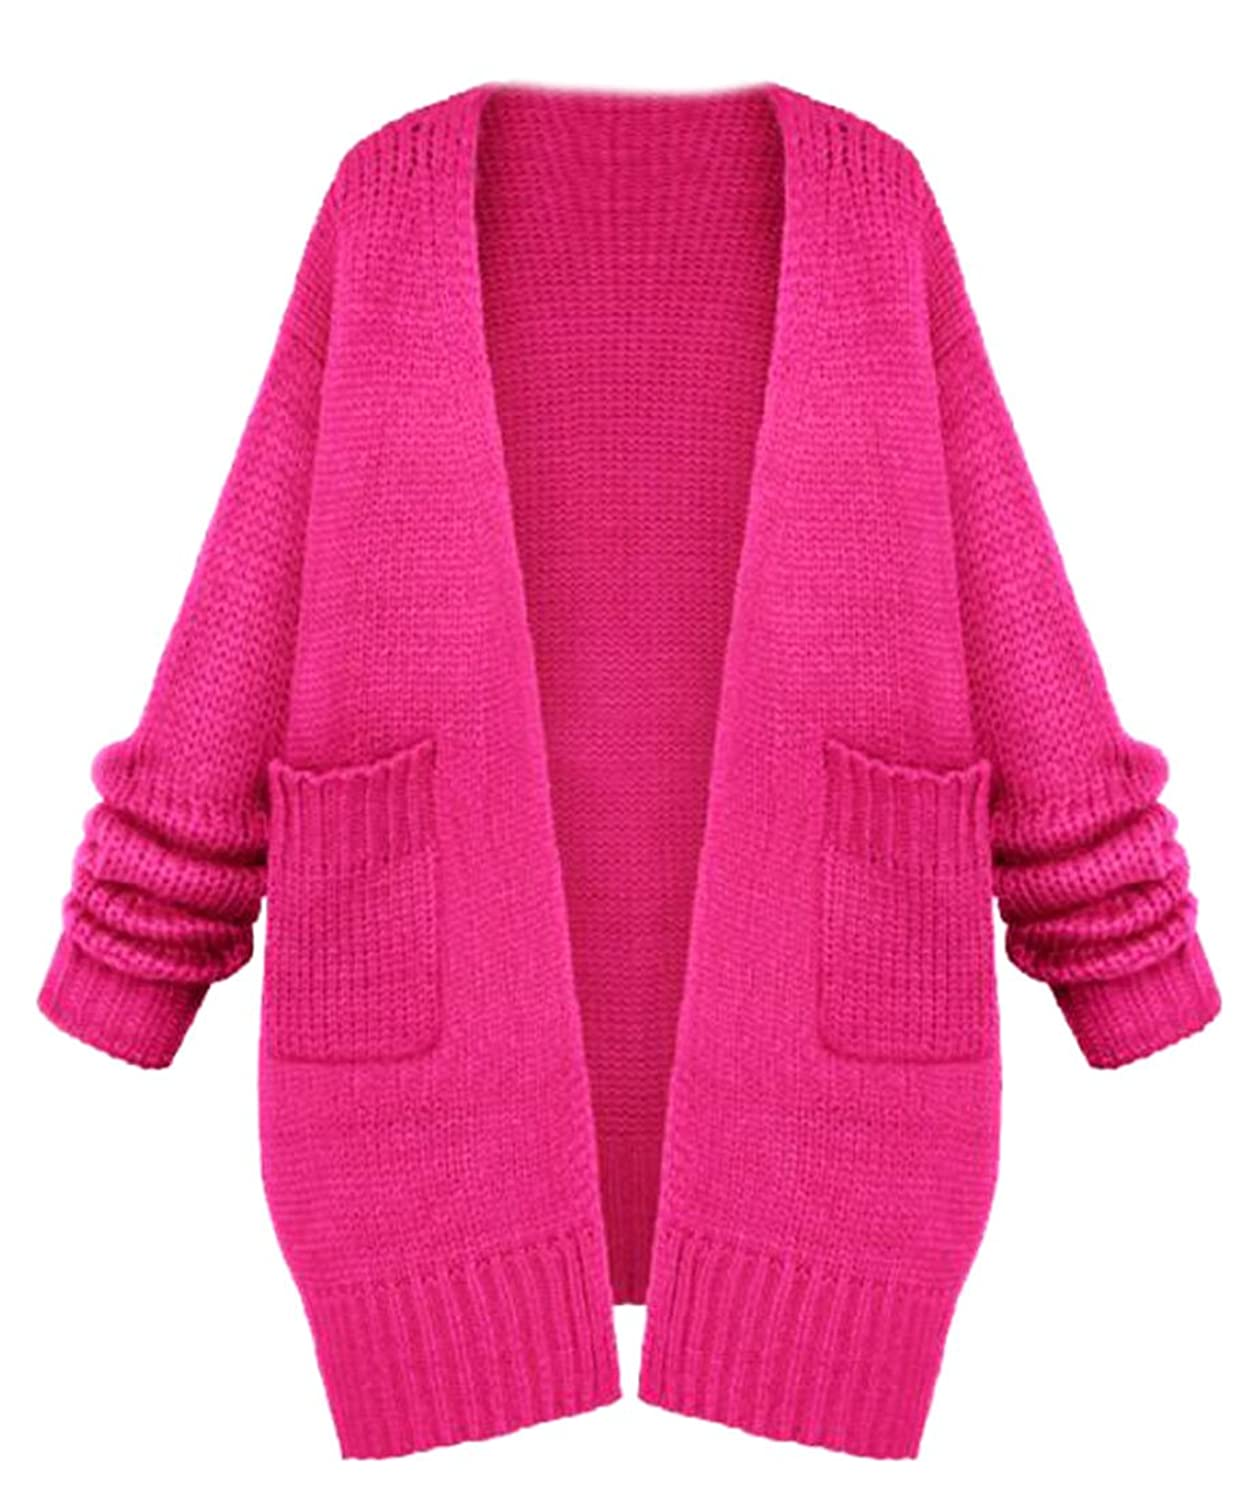 ARRIVE GUIDE Womens Fashion Solid Loose Open Front Knit Cardigan Jackets